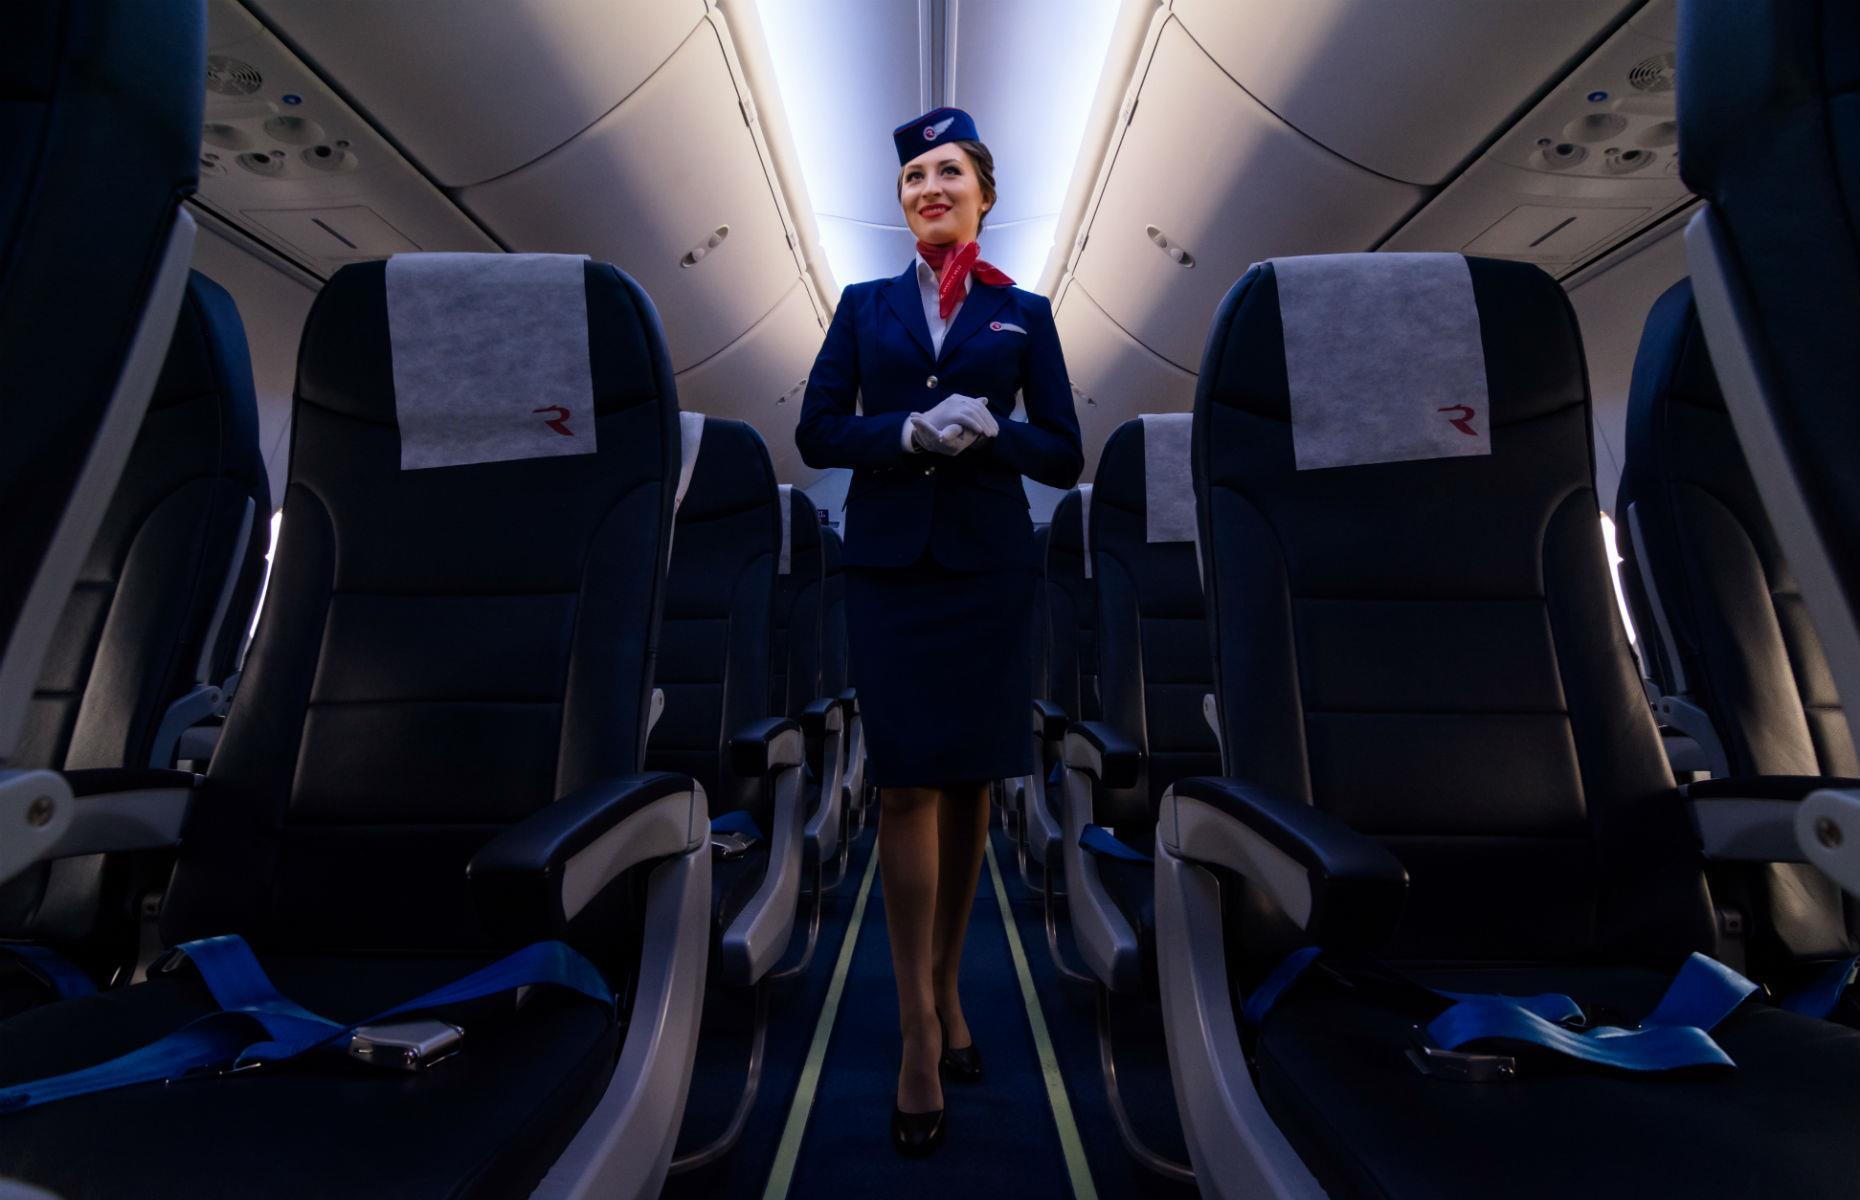 Slide 55 of 63: In the UK, the main requirements to become a flight attendant are GCSEs, the ability to swim, a passport and clearance from the Disclosure and Barring Service (DBS). It's not just about serving food and drinks – flight attendants need to be aware of safety issues and deal with problems with a calm head. On average, it takes around eight weeks of training, which some airlines pay for if you get a job with them.